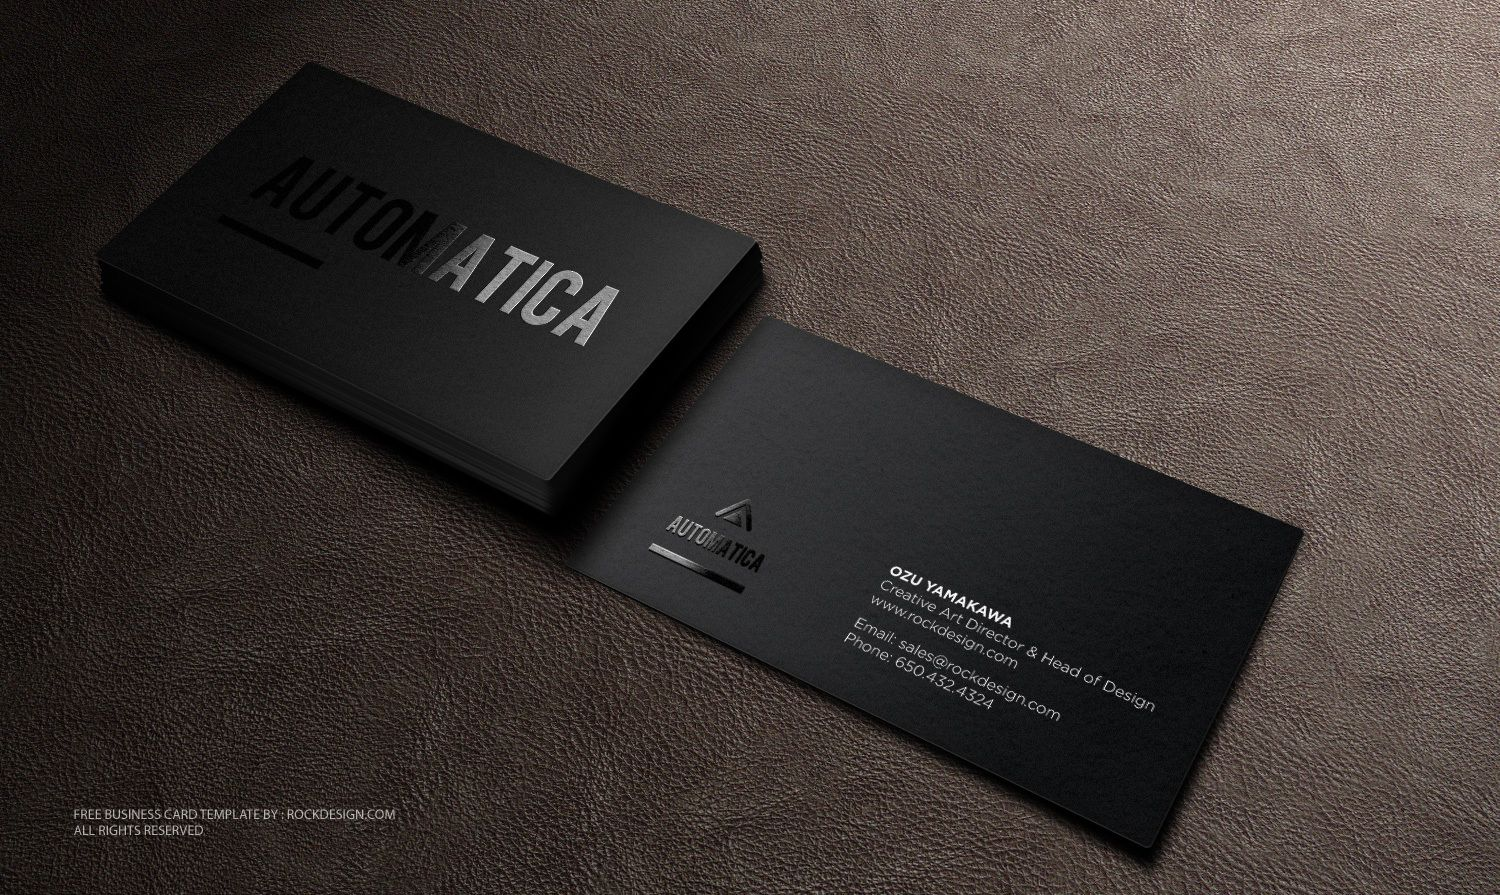 Black business card template download free design templates black business card template download free design templates flashek Image collections